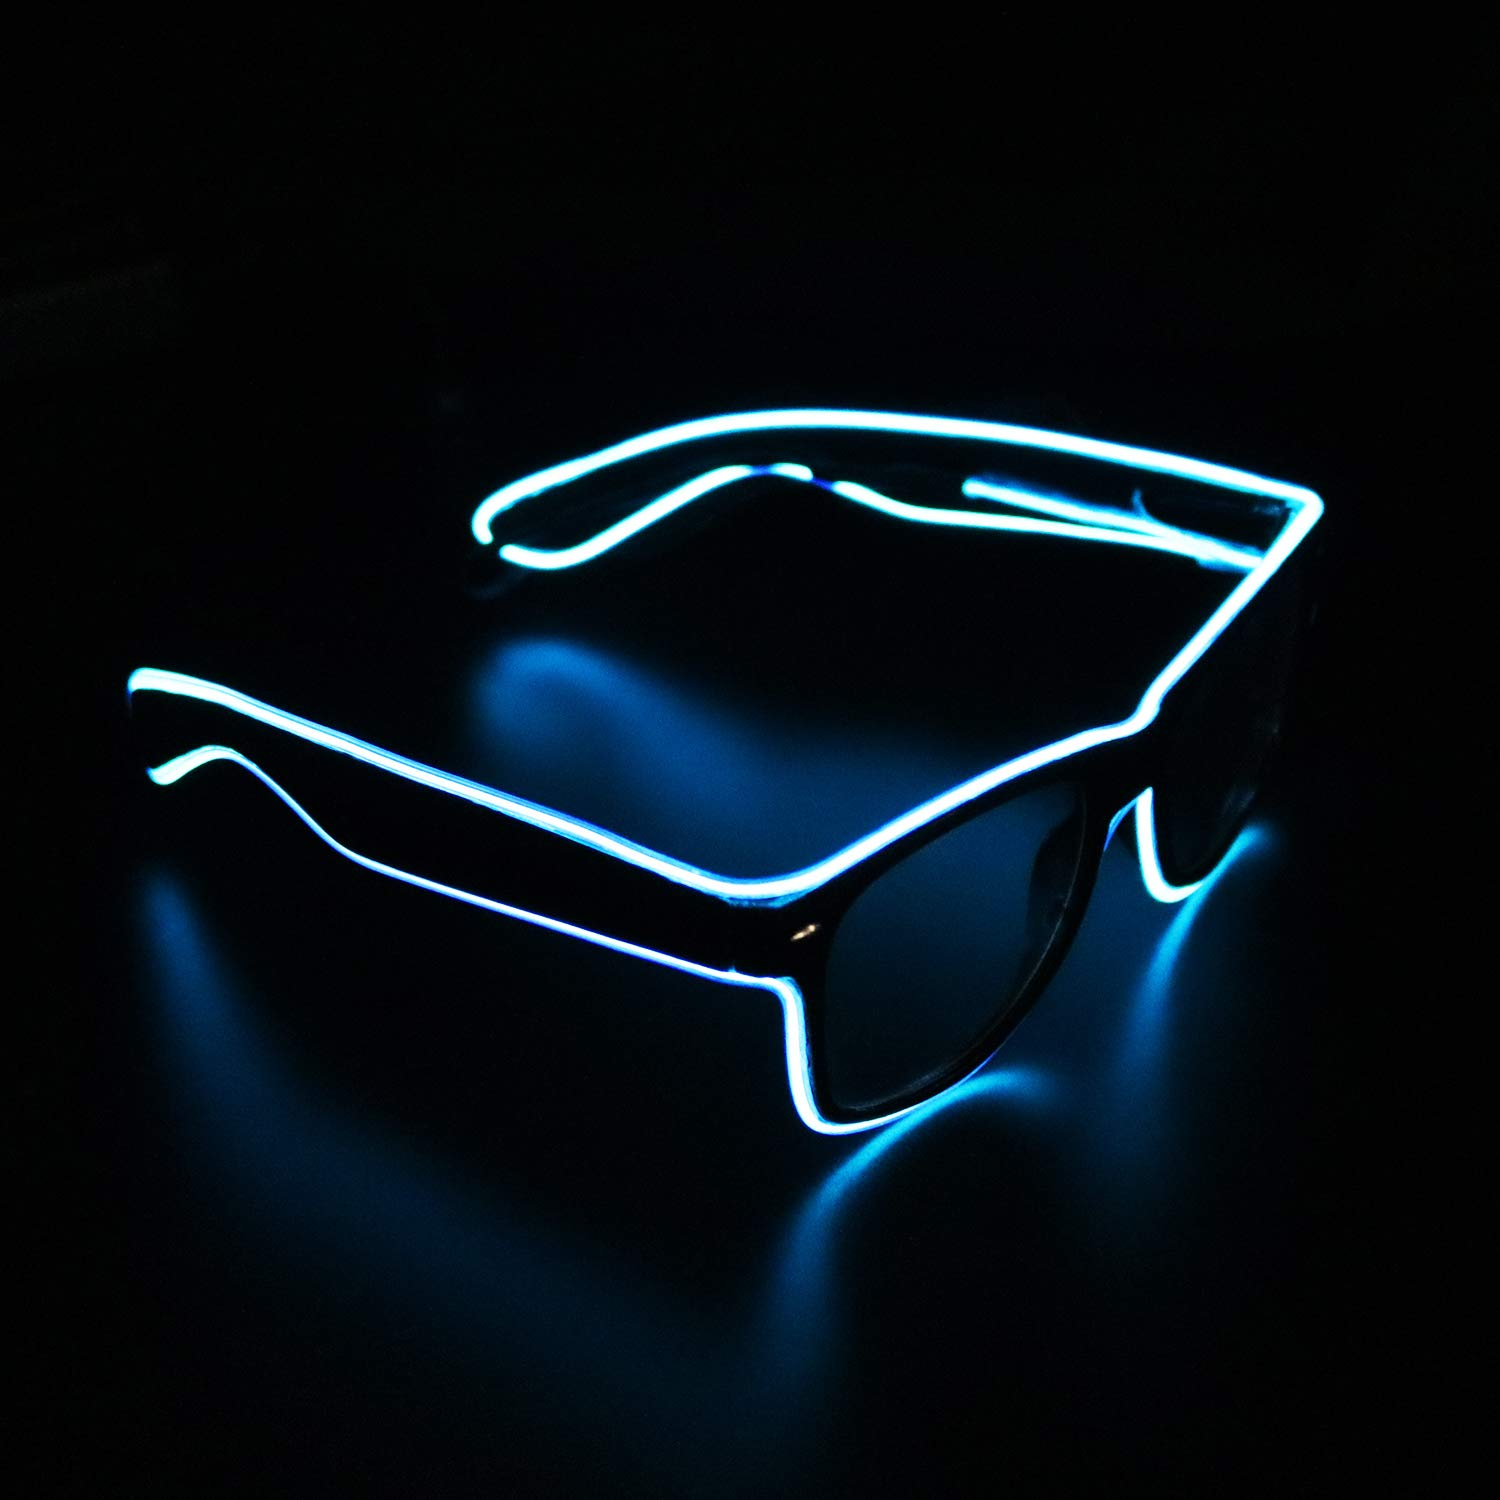 for Music Concert Live Verde 1 Raves Stage Performance Show,for Christmas Halloween Wild Party,Dance Ball,Crazy Parties Neon El Wire LED Lighting Up Slotted Shutter Glasses Eyeglasses Eyewear